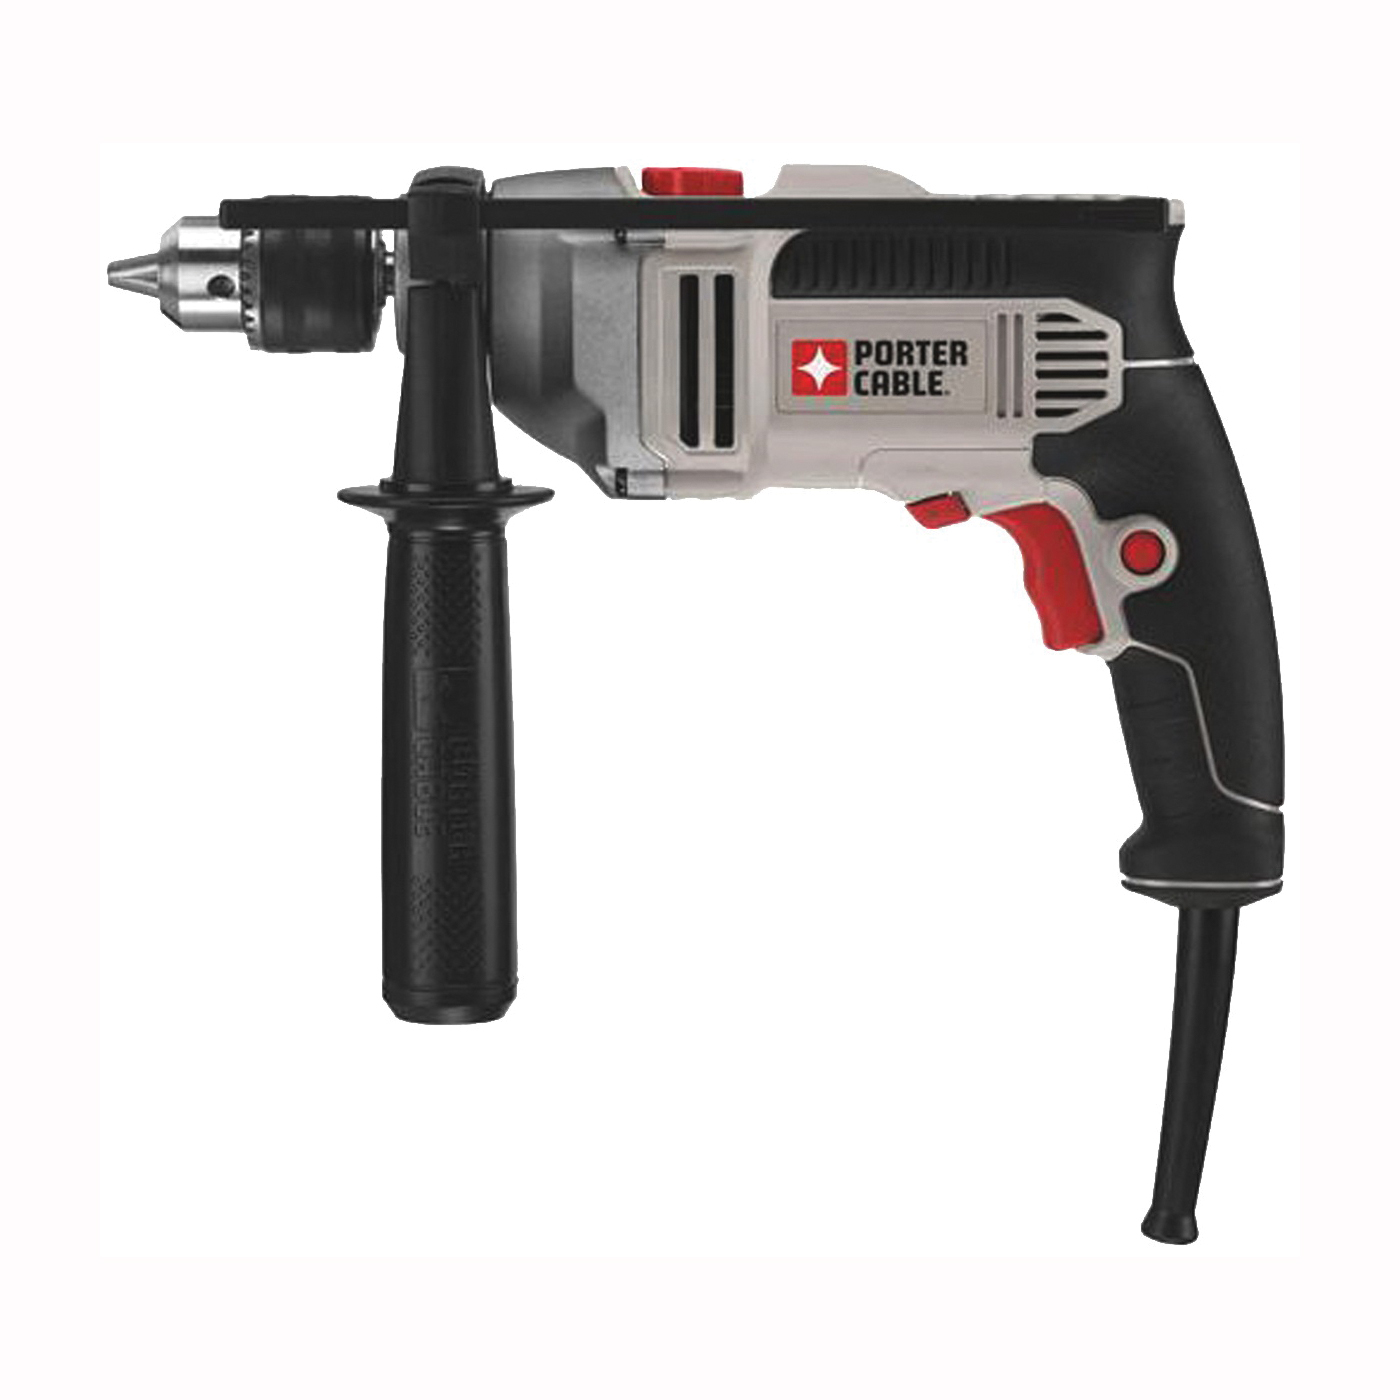 Picture of PORTER-CABLE PCE141 Hammer Drill, 7 A, 5/8 in Concrete, 1/2 in Steel, 1-1/4 in Wood Drilling, 1/2 in Chuck